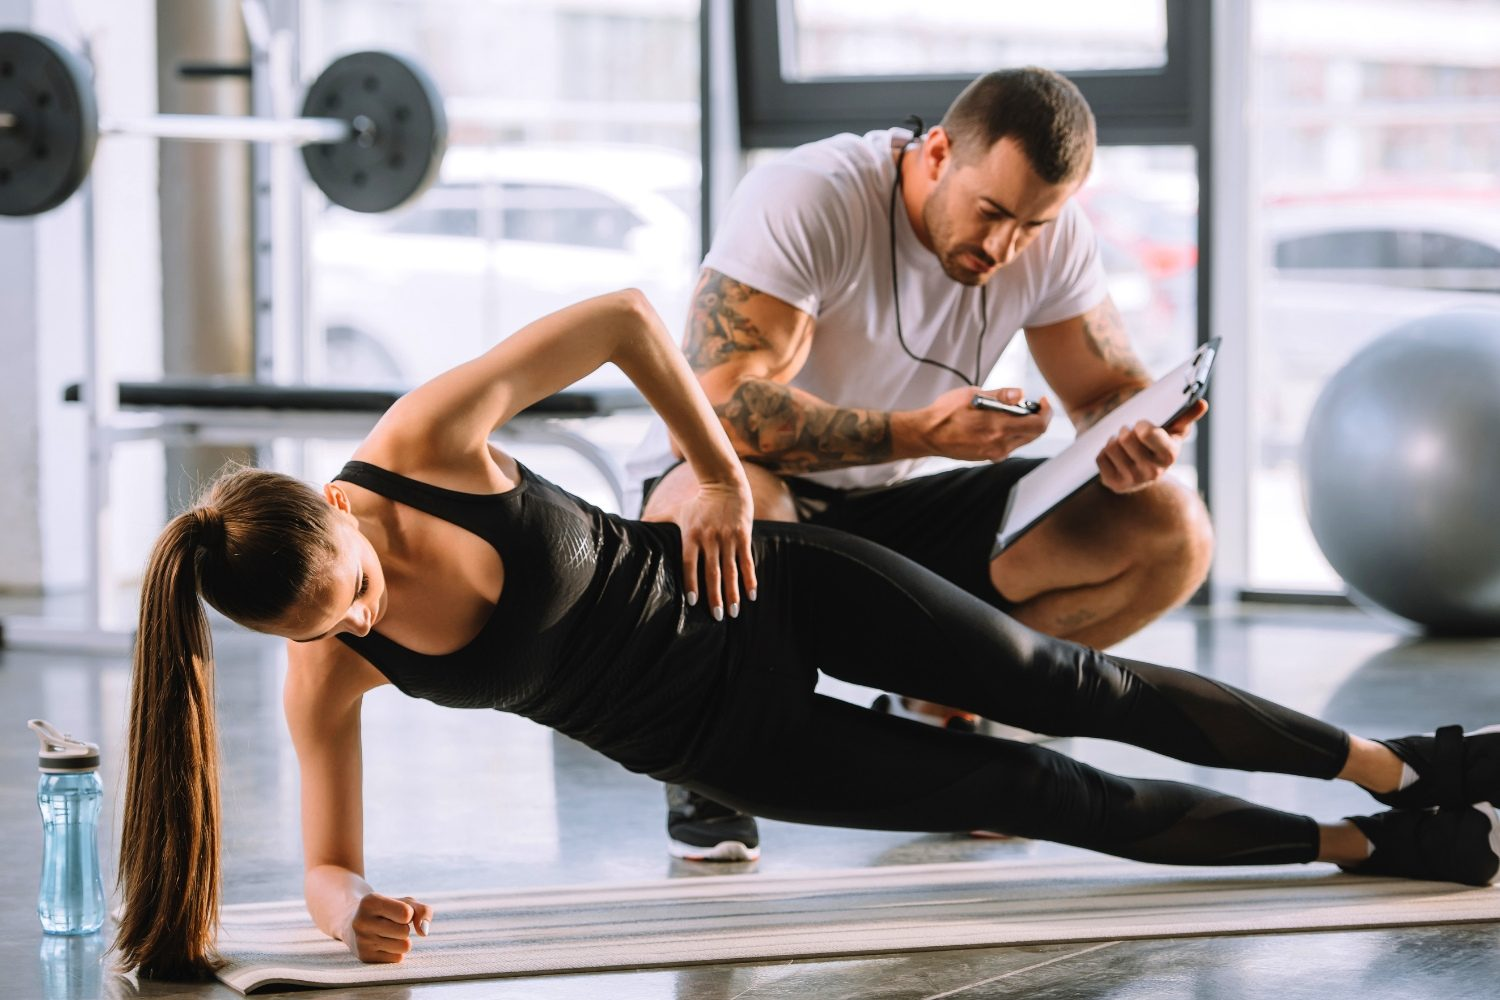 What You Need To Know Before Hiring A Personal Fitness Trainer